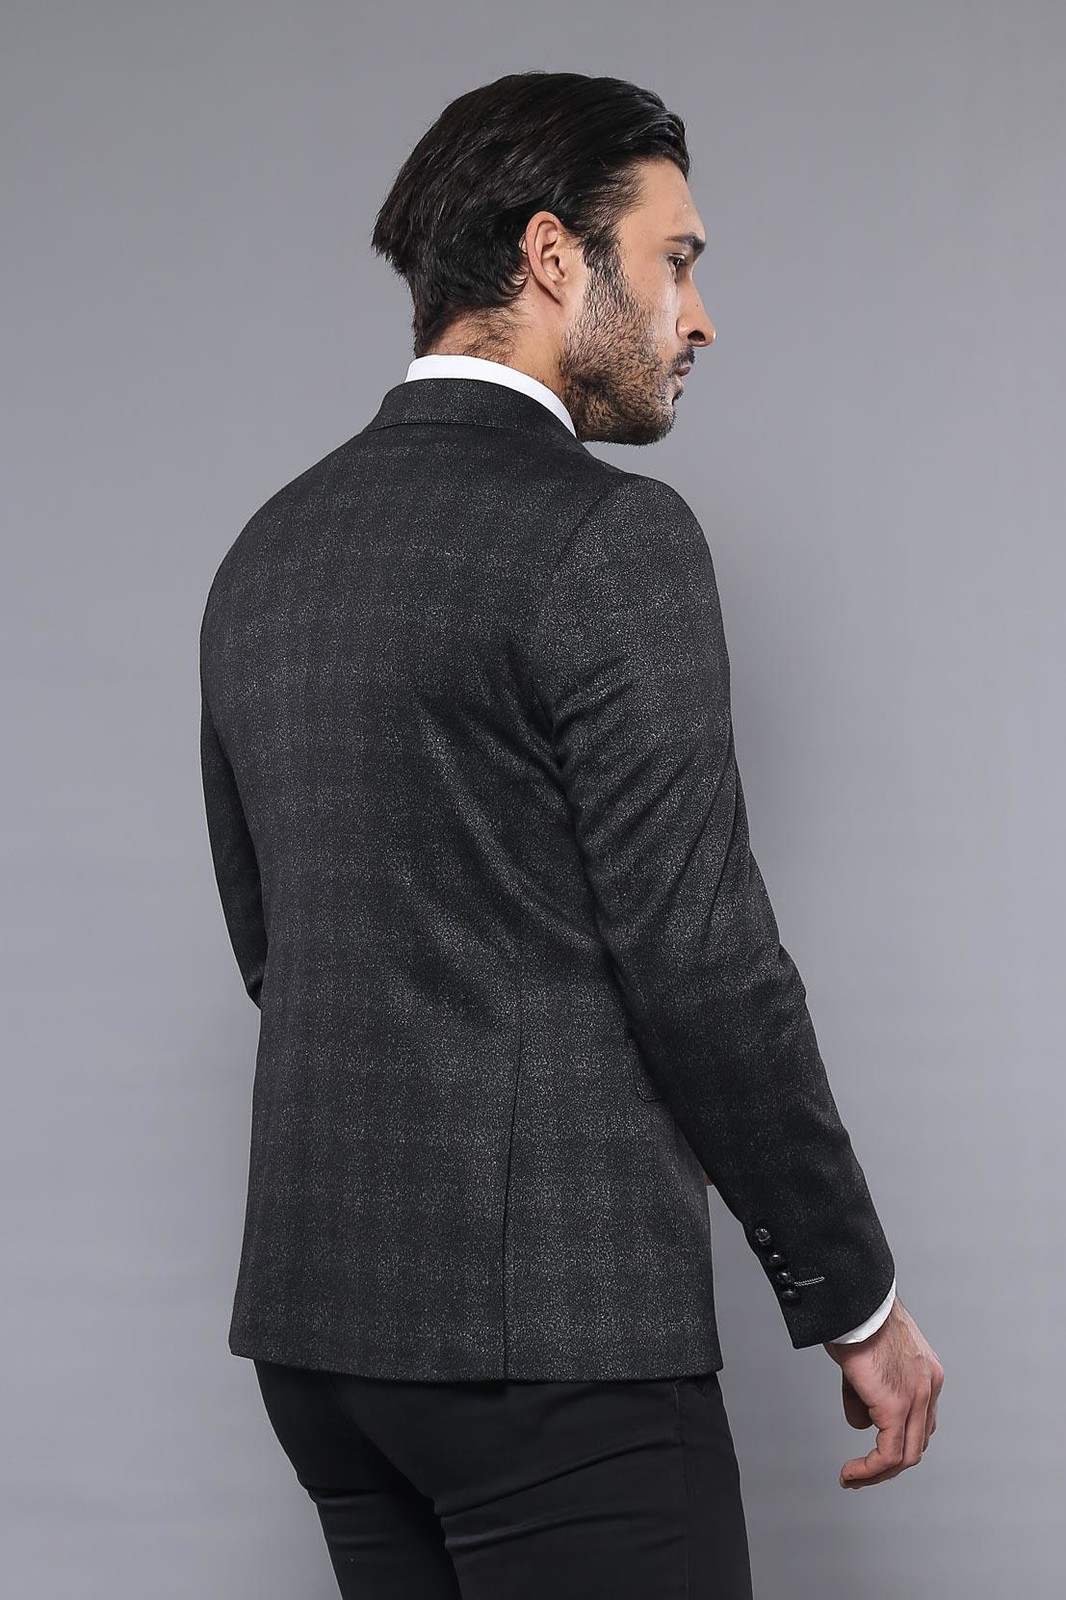 6 Buttoned Checked Black Double Breasted Blazer | Wessi